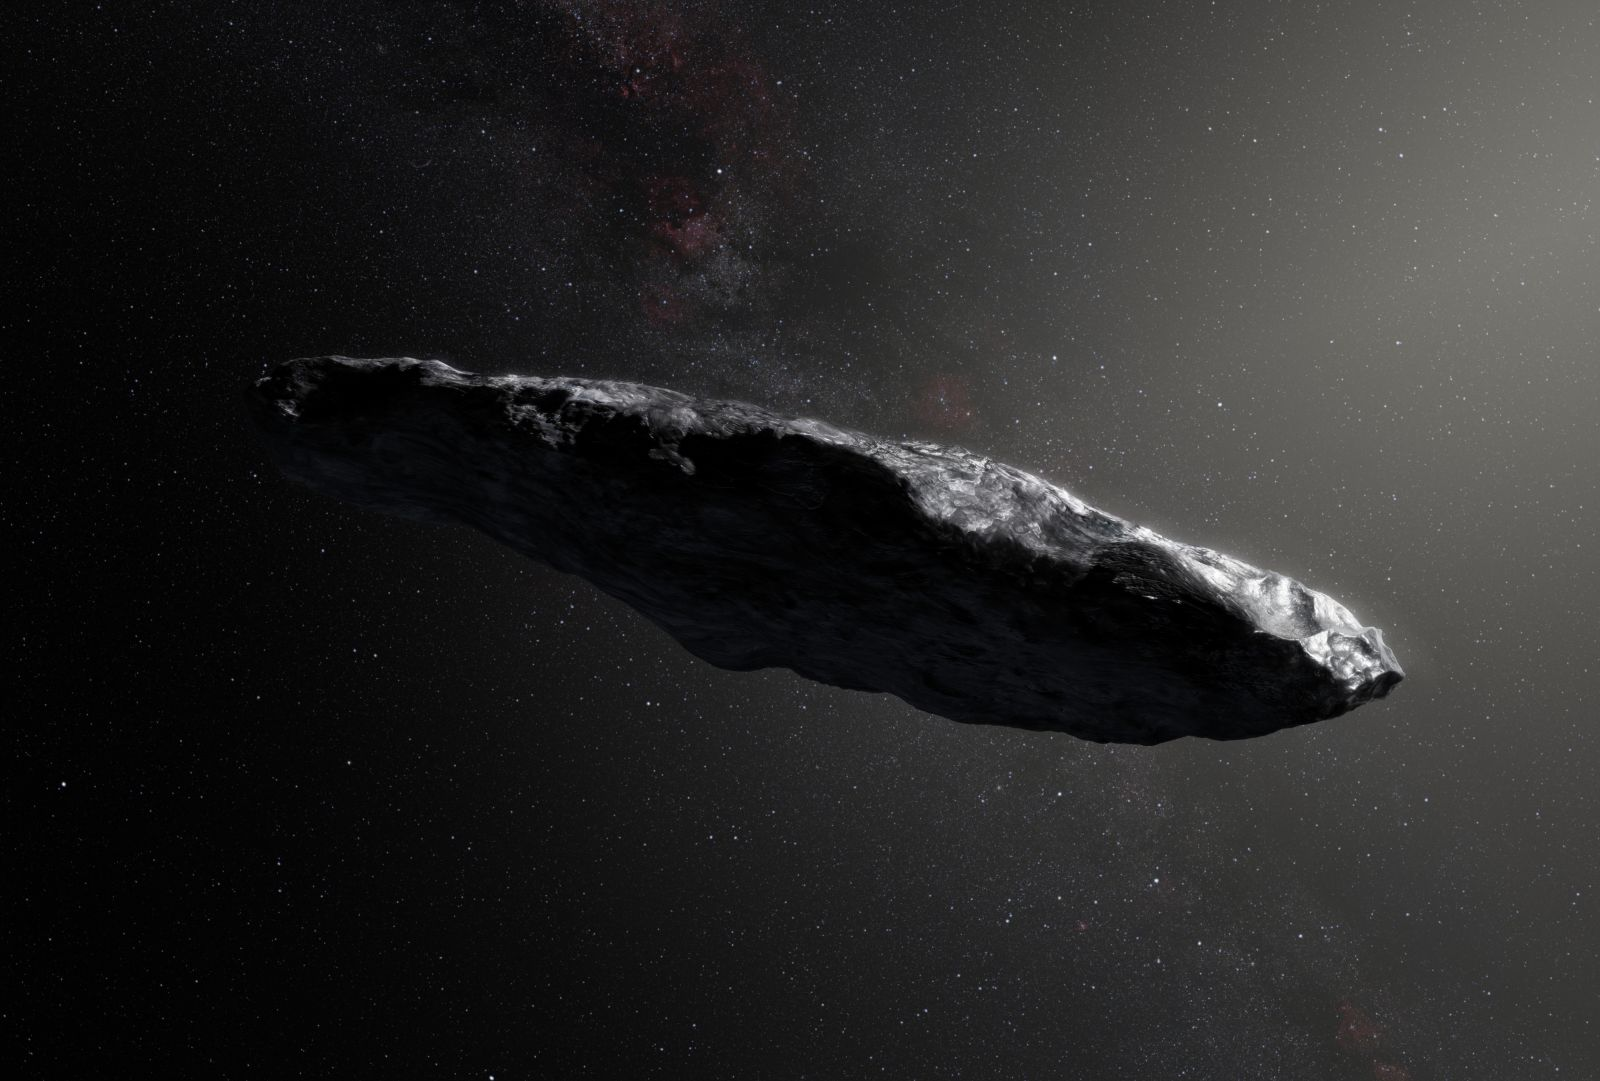 An illustration of 'Oumuamua, the first object we've ever seen pass through our own solar system that has interstellar origins. Image Credit: European Southern Observatory / M. Kornmesser